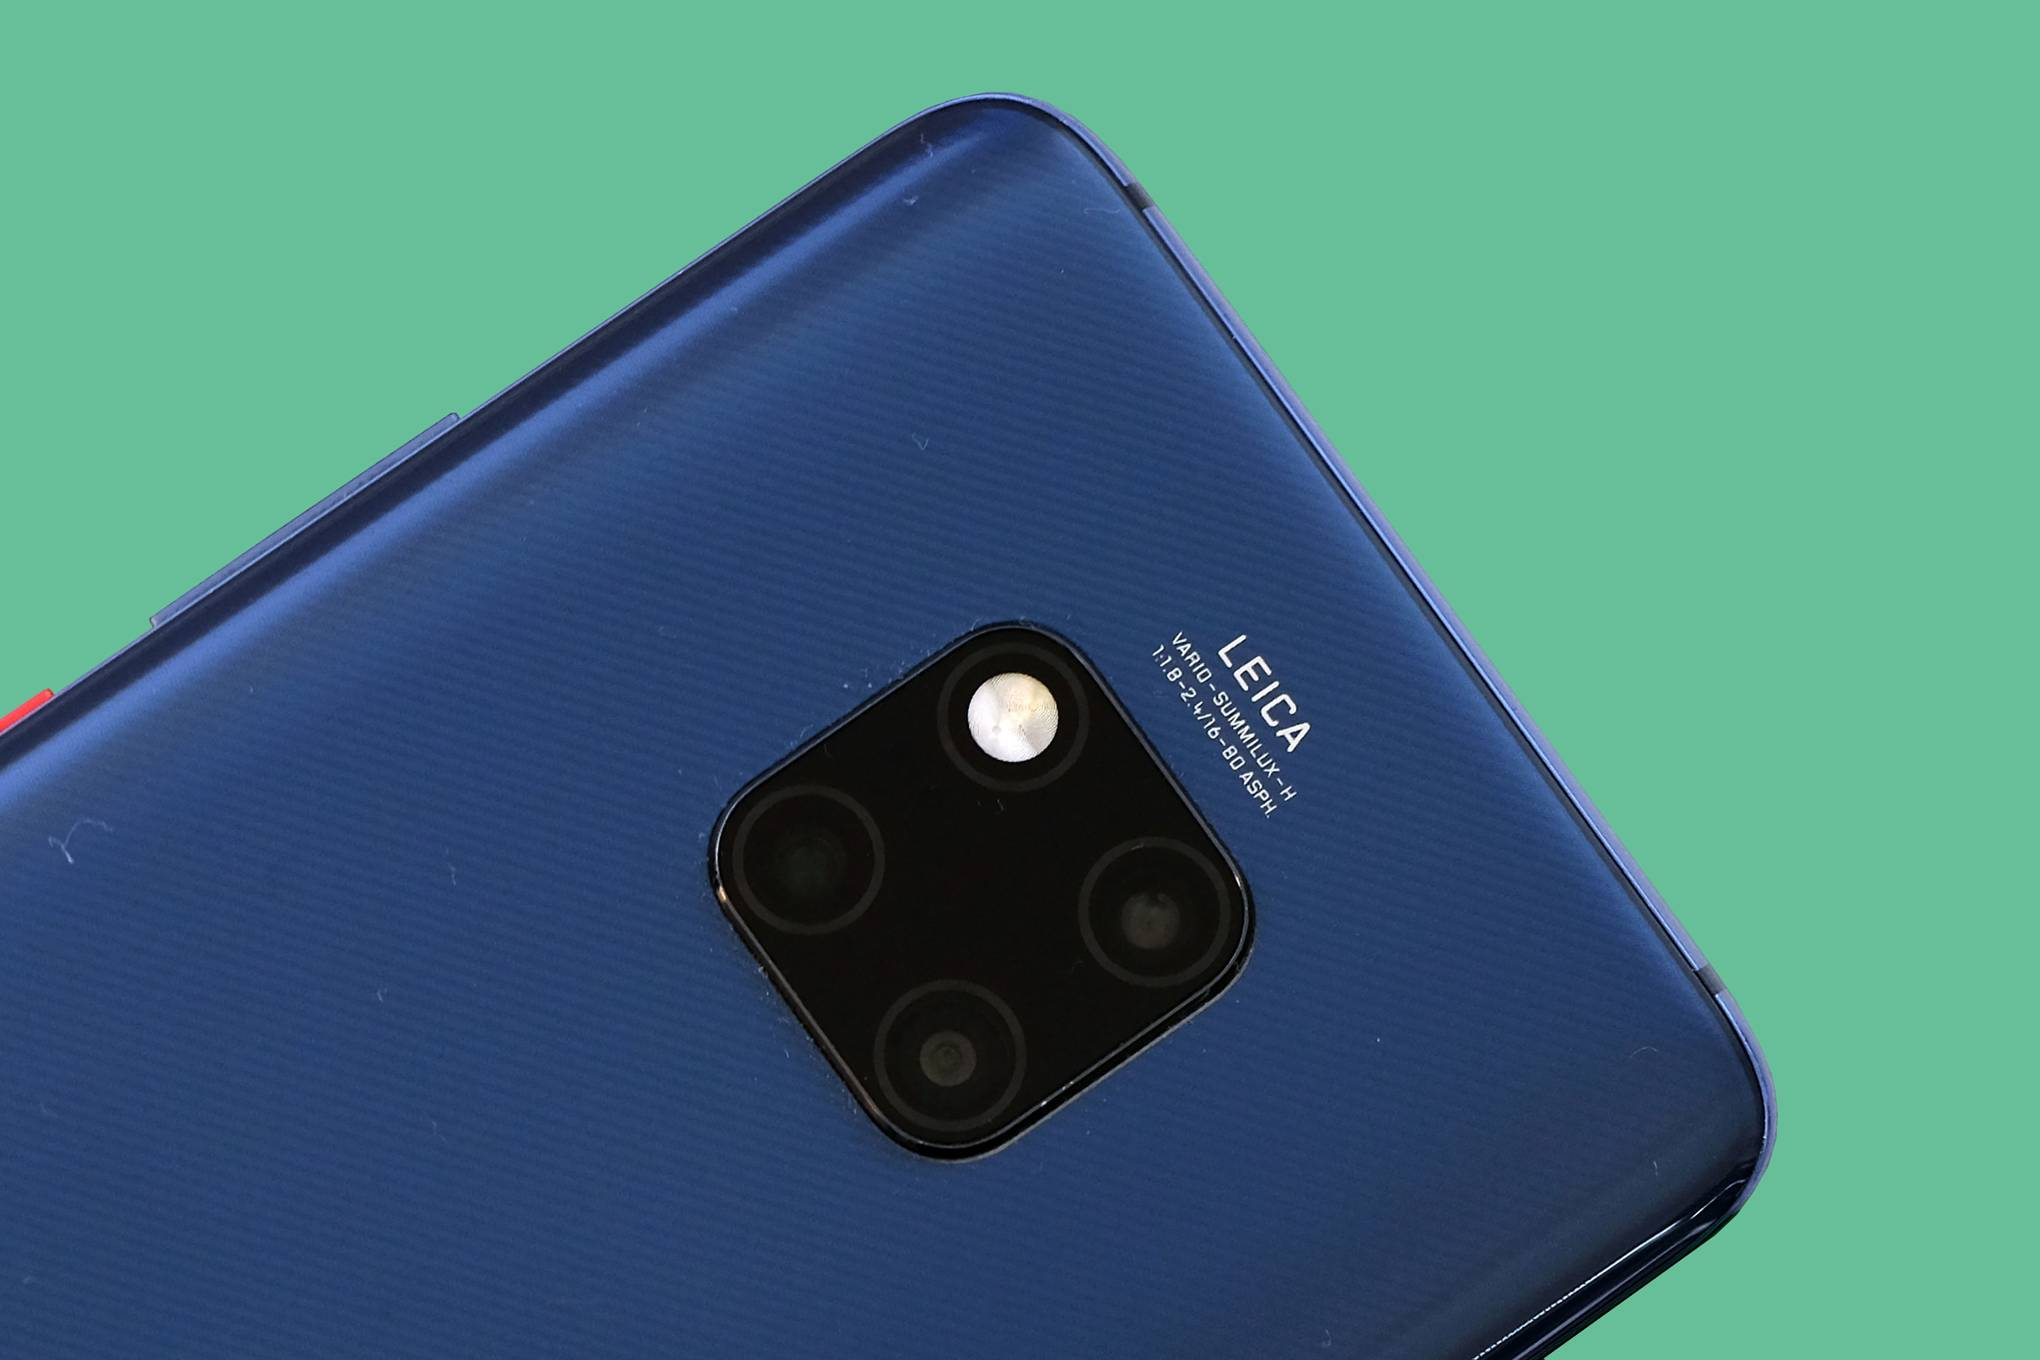 Huawei Mate 20 Pro review: the most tech-filled phone of the year